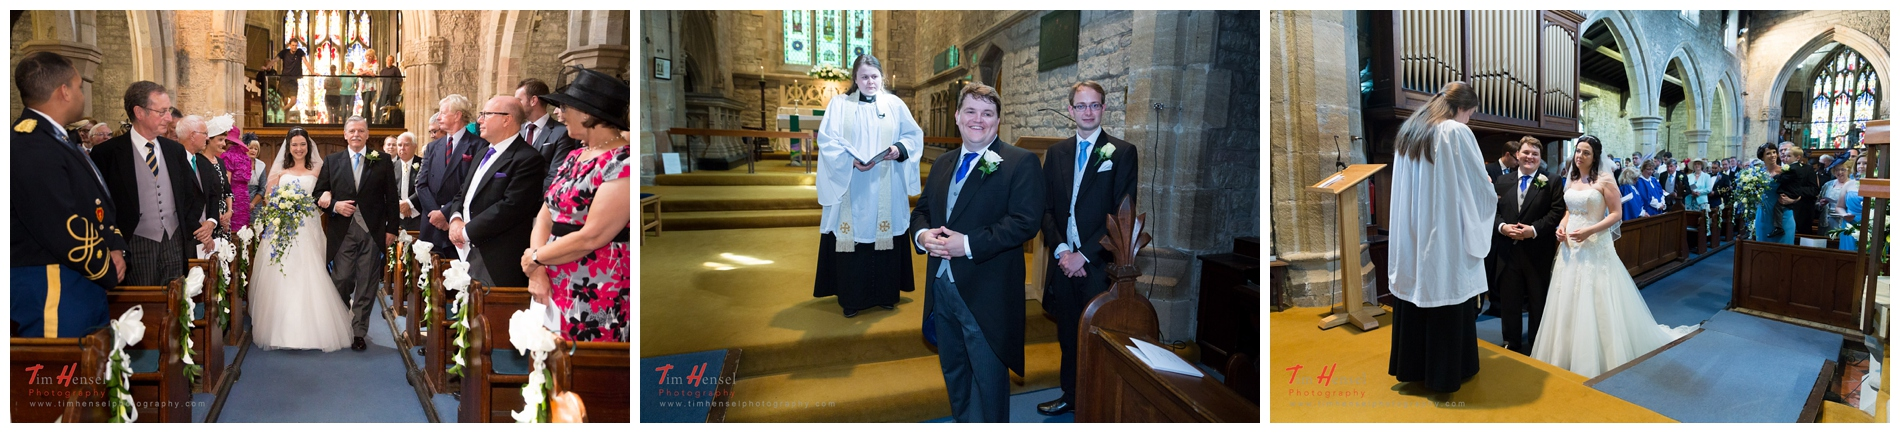 the bride walking up the aisle, the groom waiting, at st michael's church in hathersage